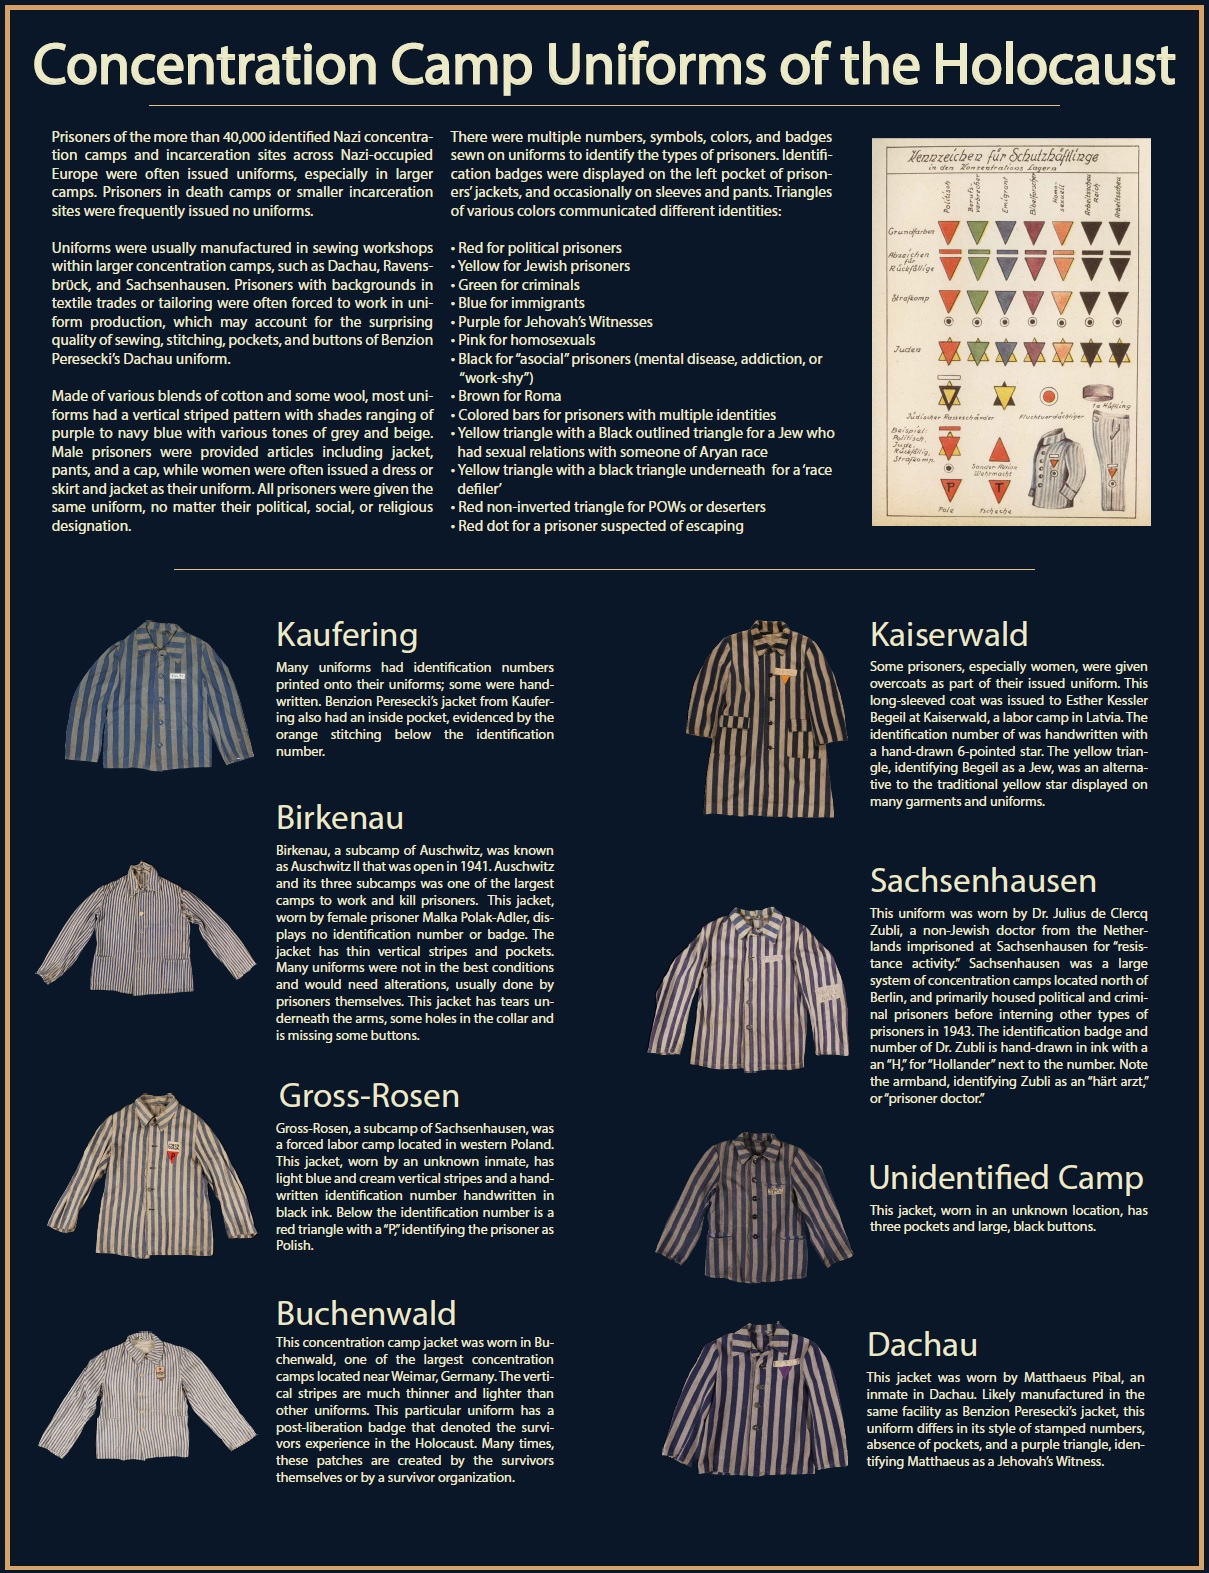 A graphic showing the different types of uniforms and means of identifying unique groups within the camps. Different camps used stripes of varying thickness while different colored triangles were used to identify prisoners.